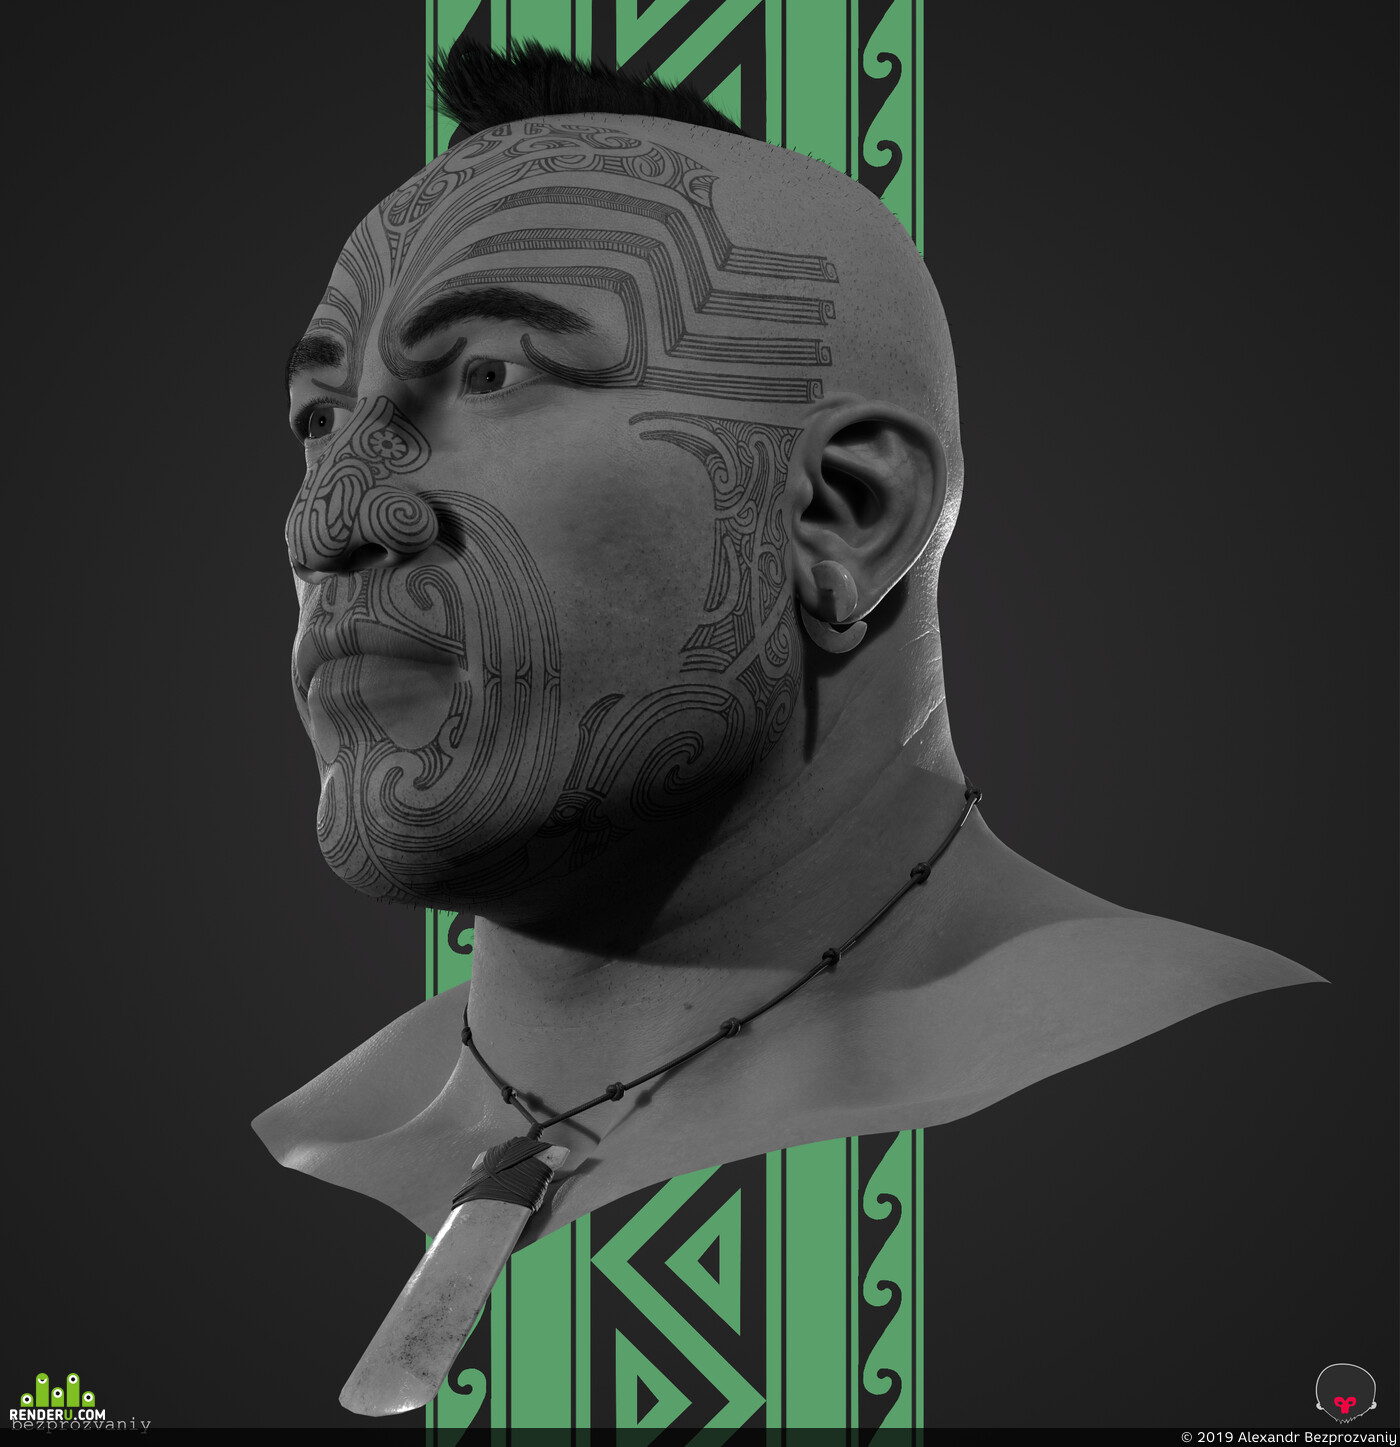 ZBrush, zbrushsculpt, Pixologic ZBrush, substance painter, 3d character, realtimecharacter